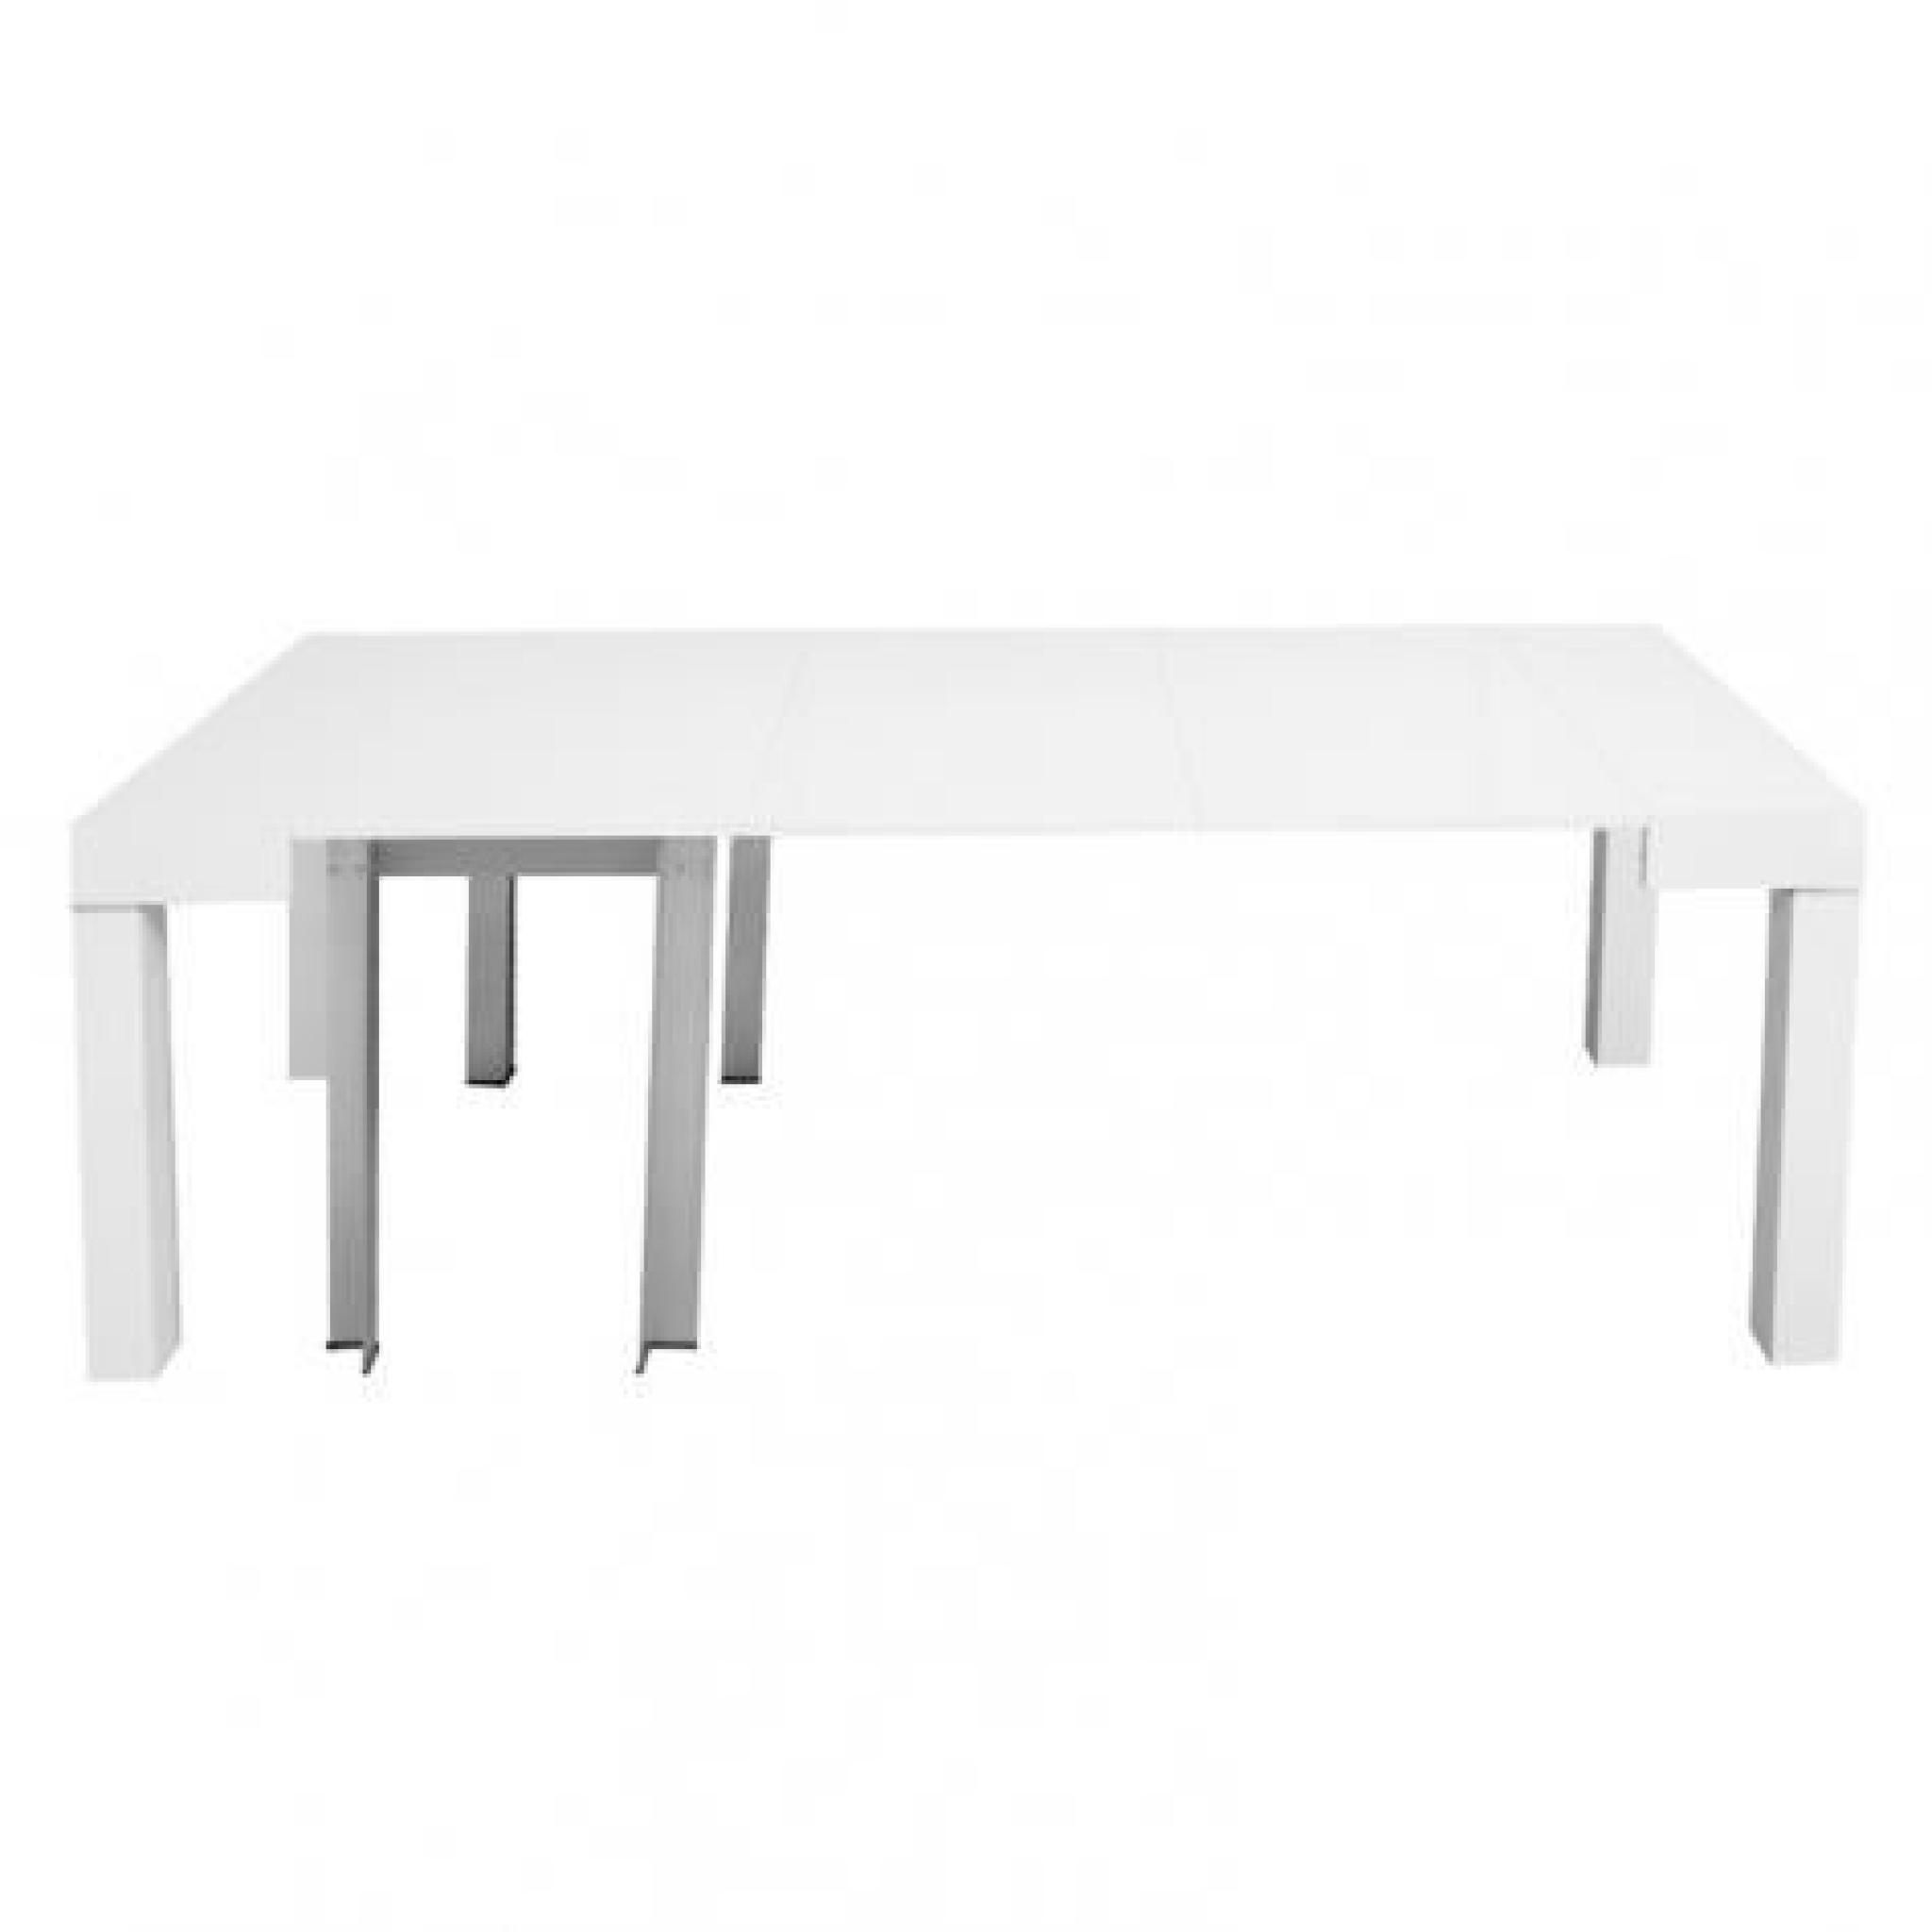 Table console extensible blanche laqu e 4 rallonges alesia for Table laquee blanche